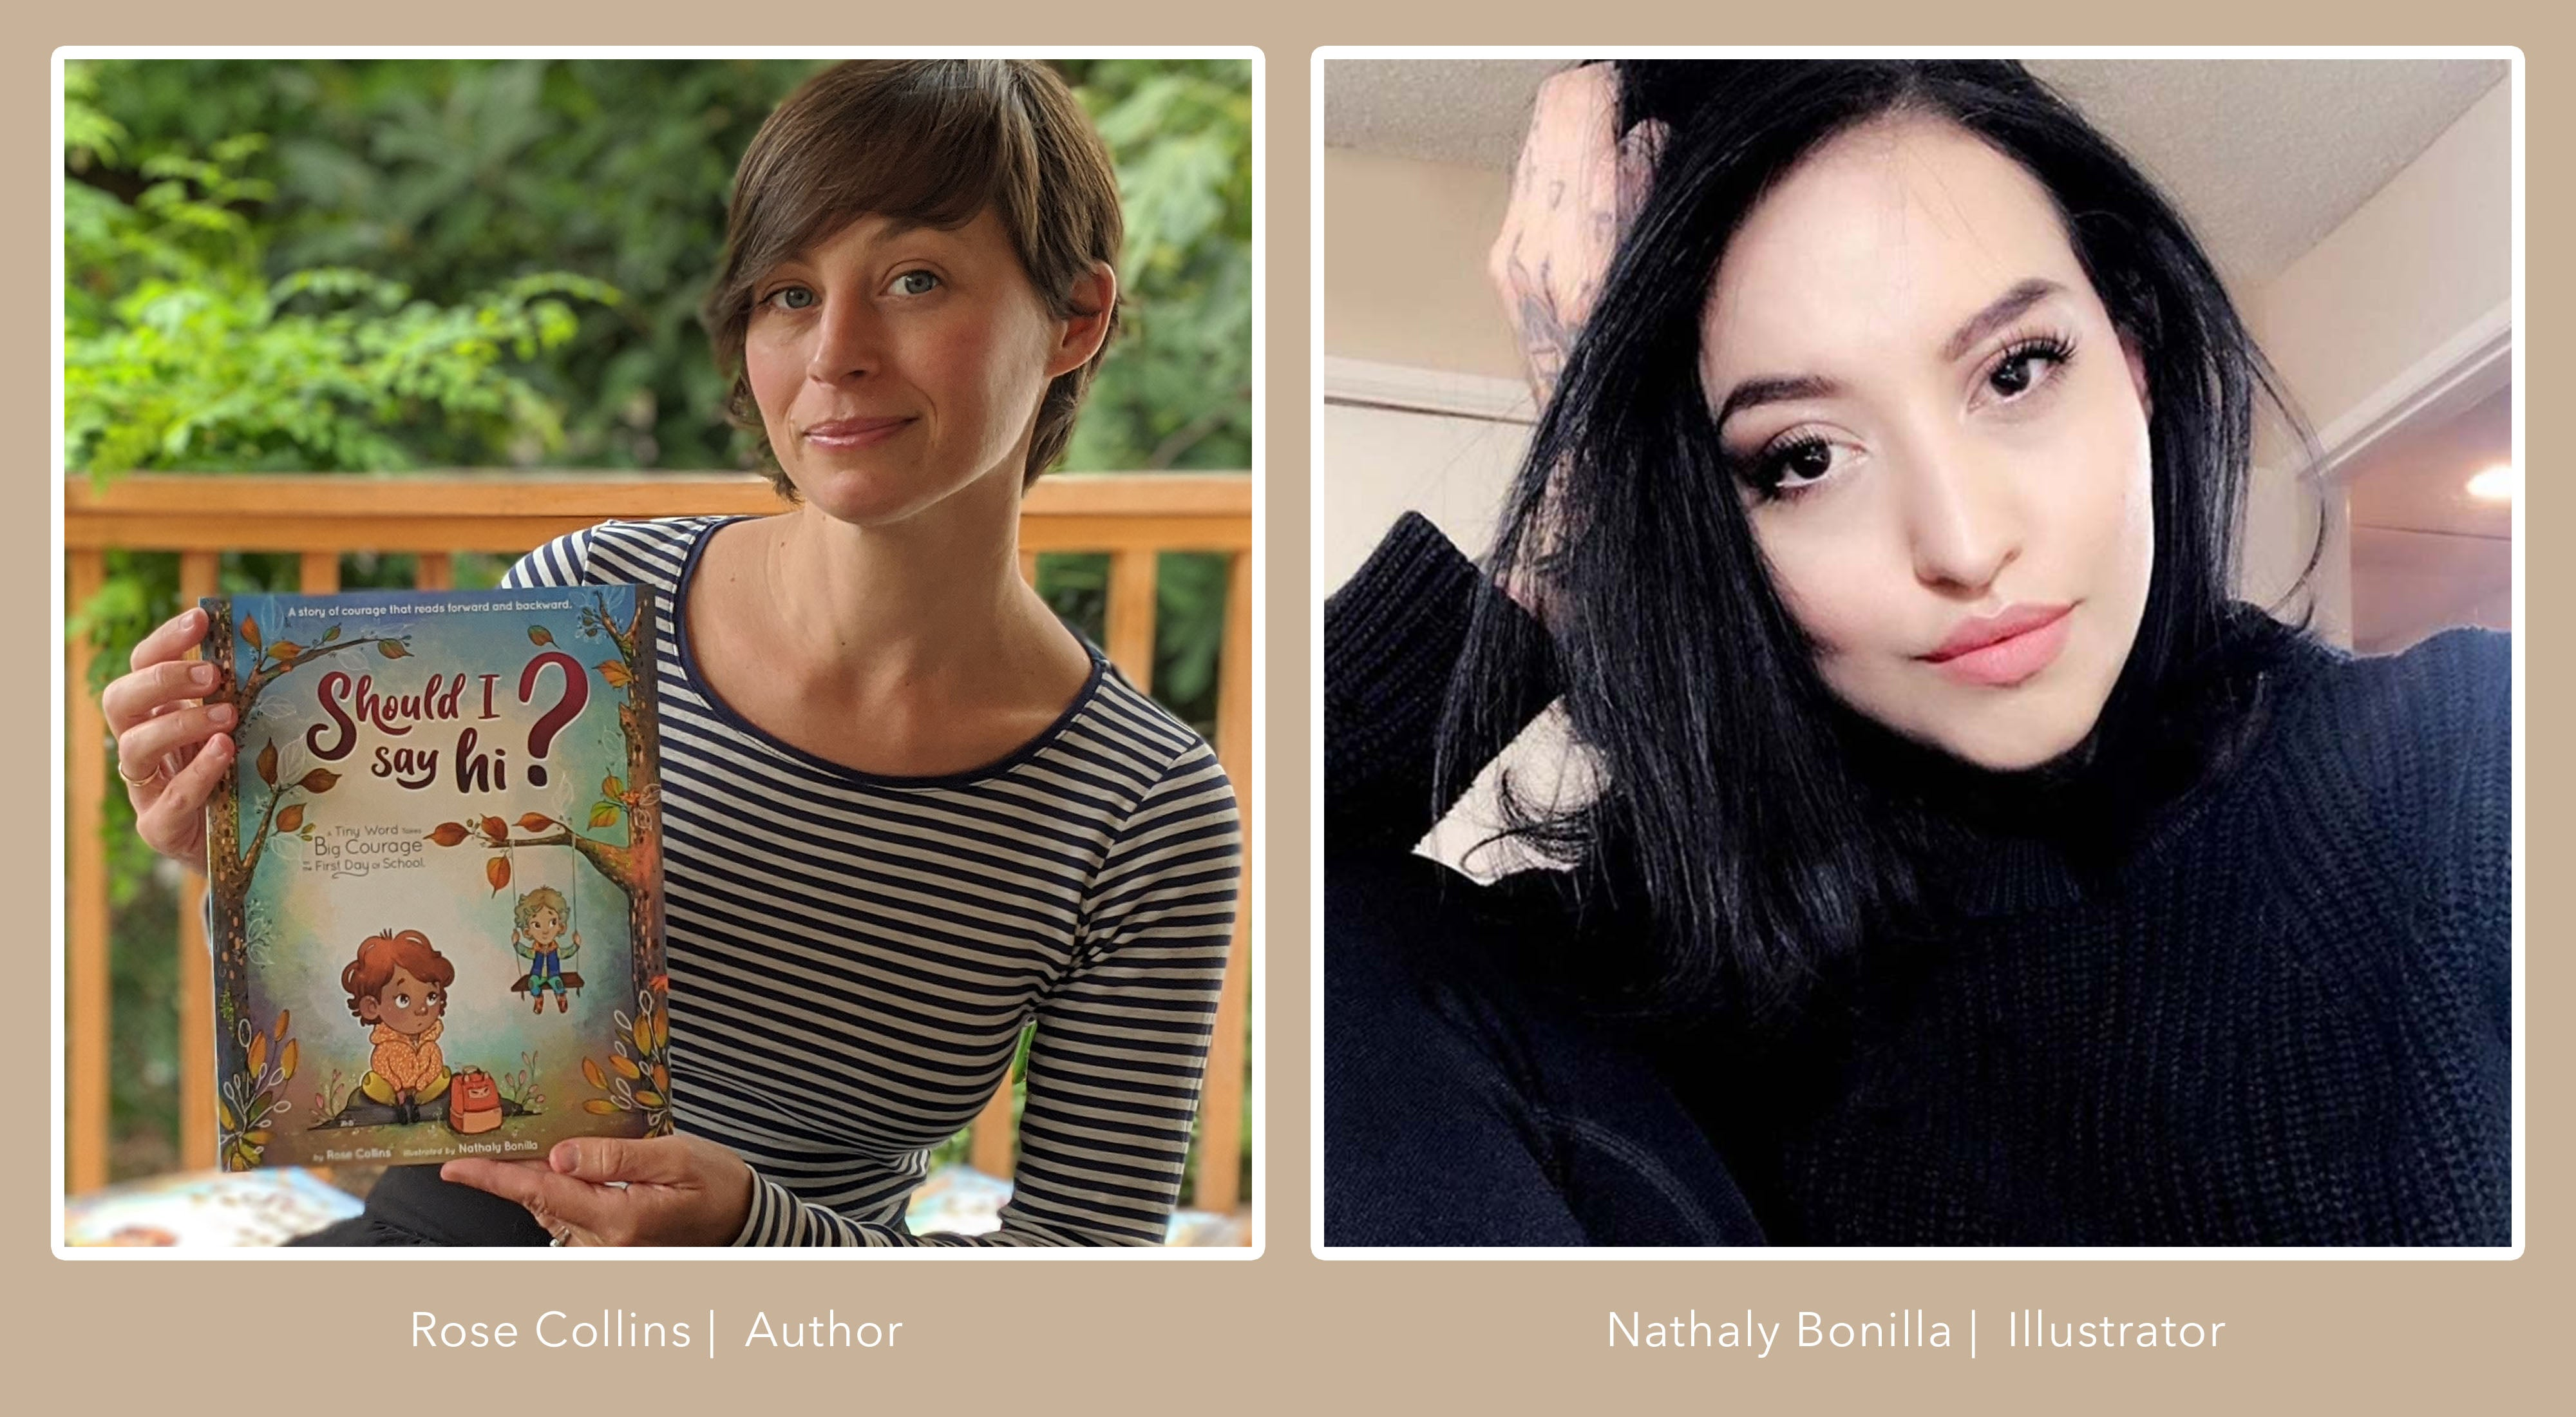 Bio Pictures of Rose Collins, author and Nathaly Bonilla, illustrator